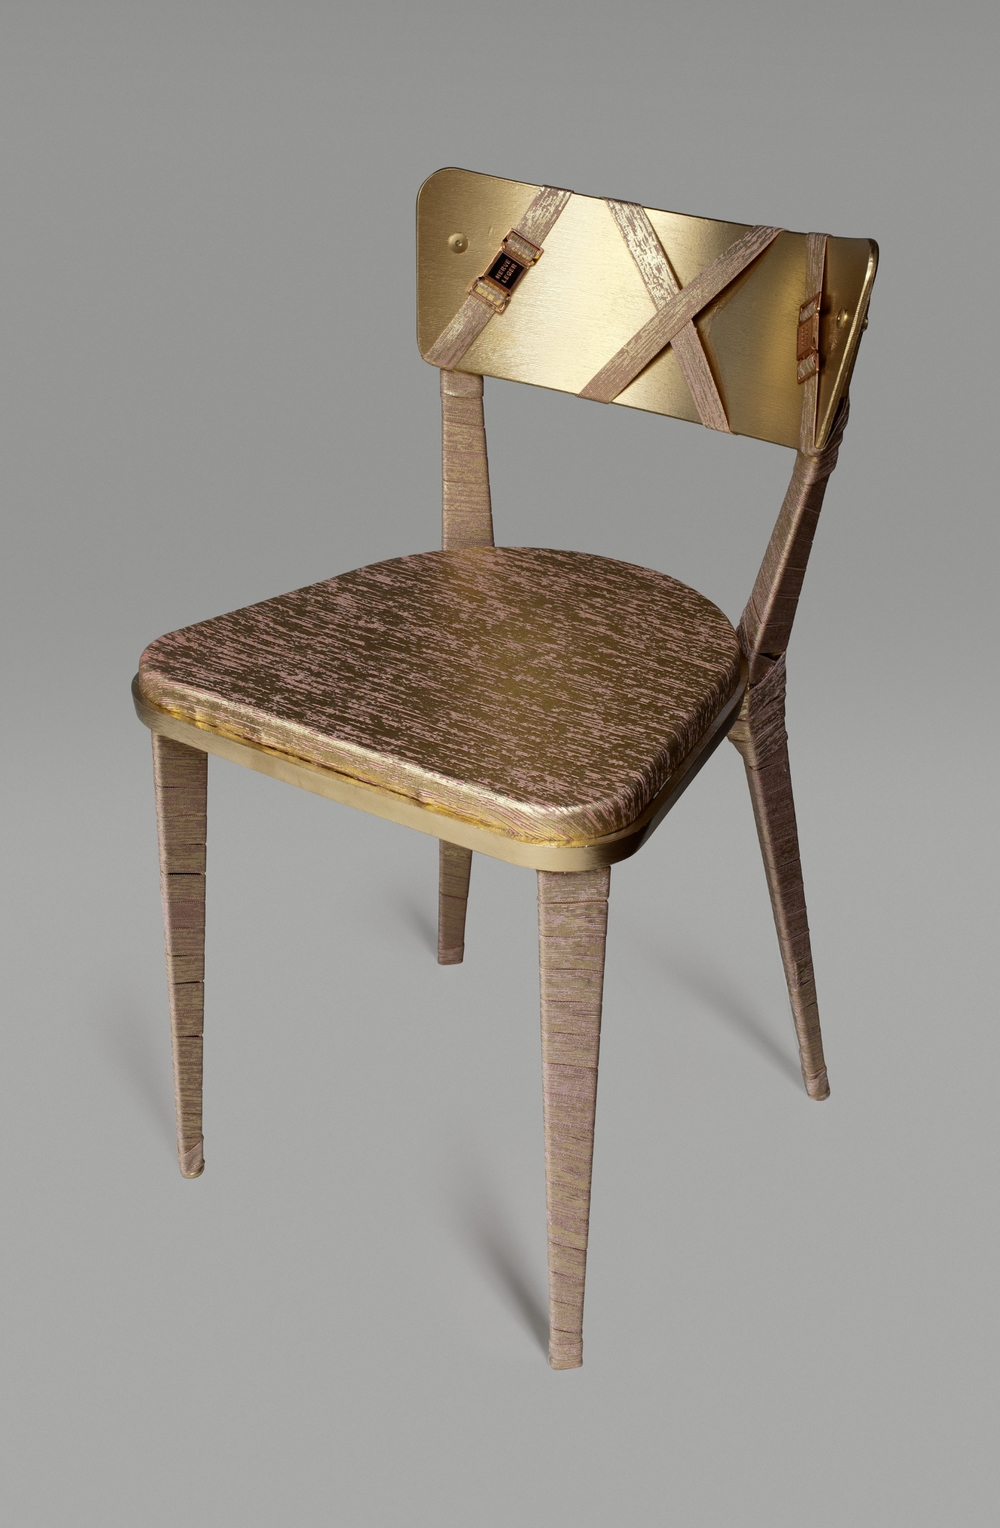 73_Hervé_Léger_Chair_Carl_Glover.jpg